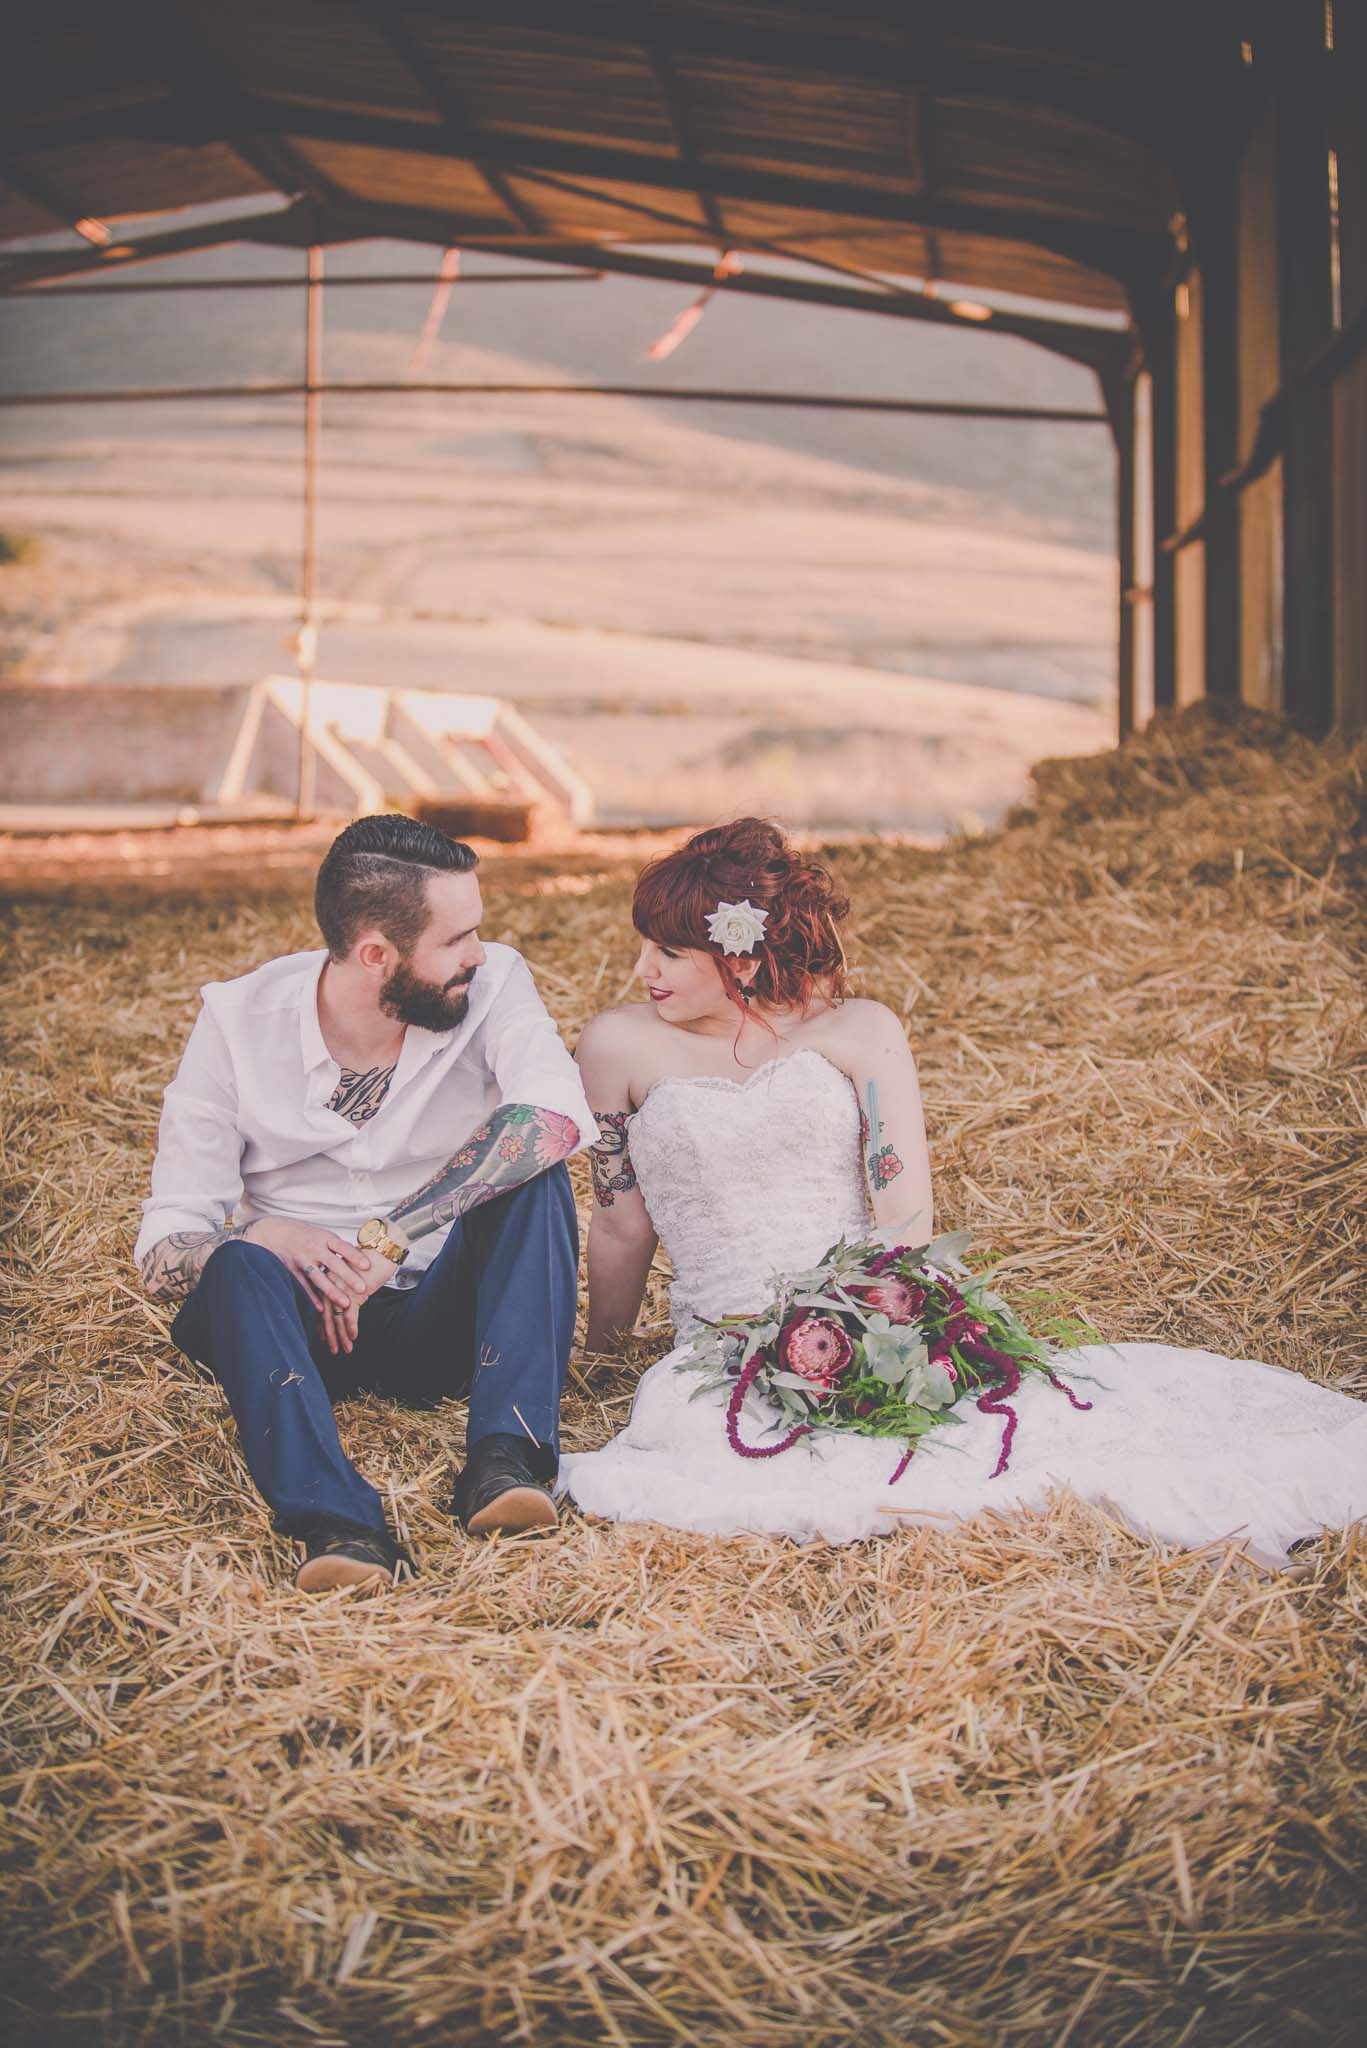 Couples in a barn